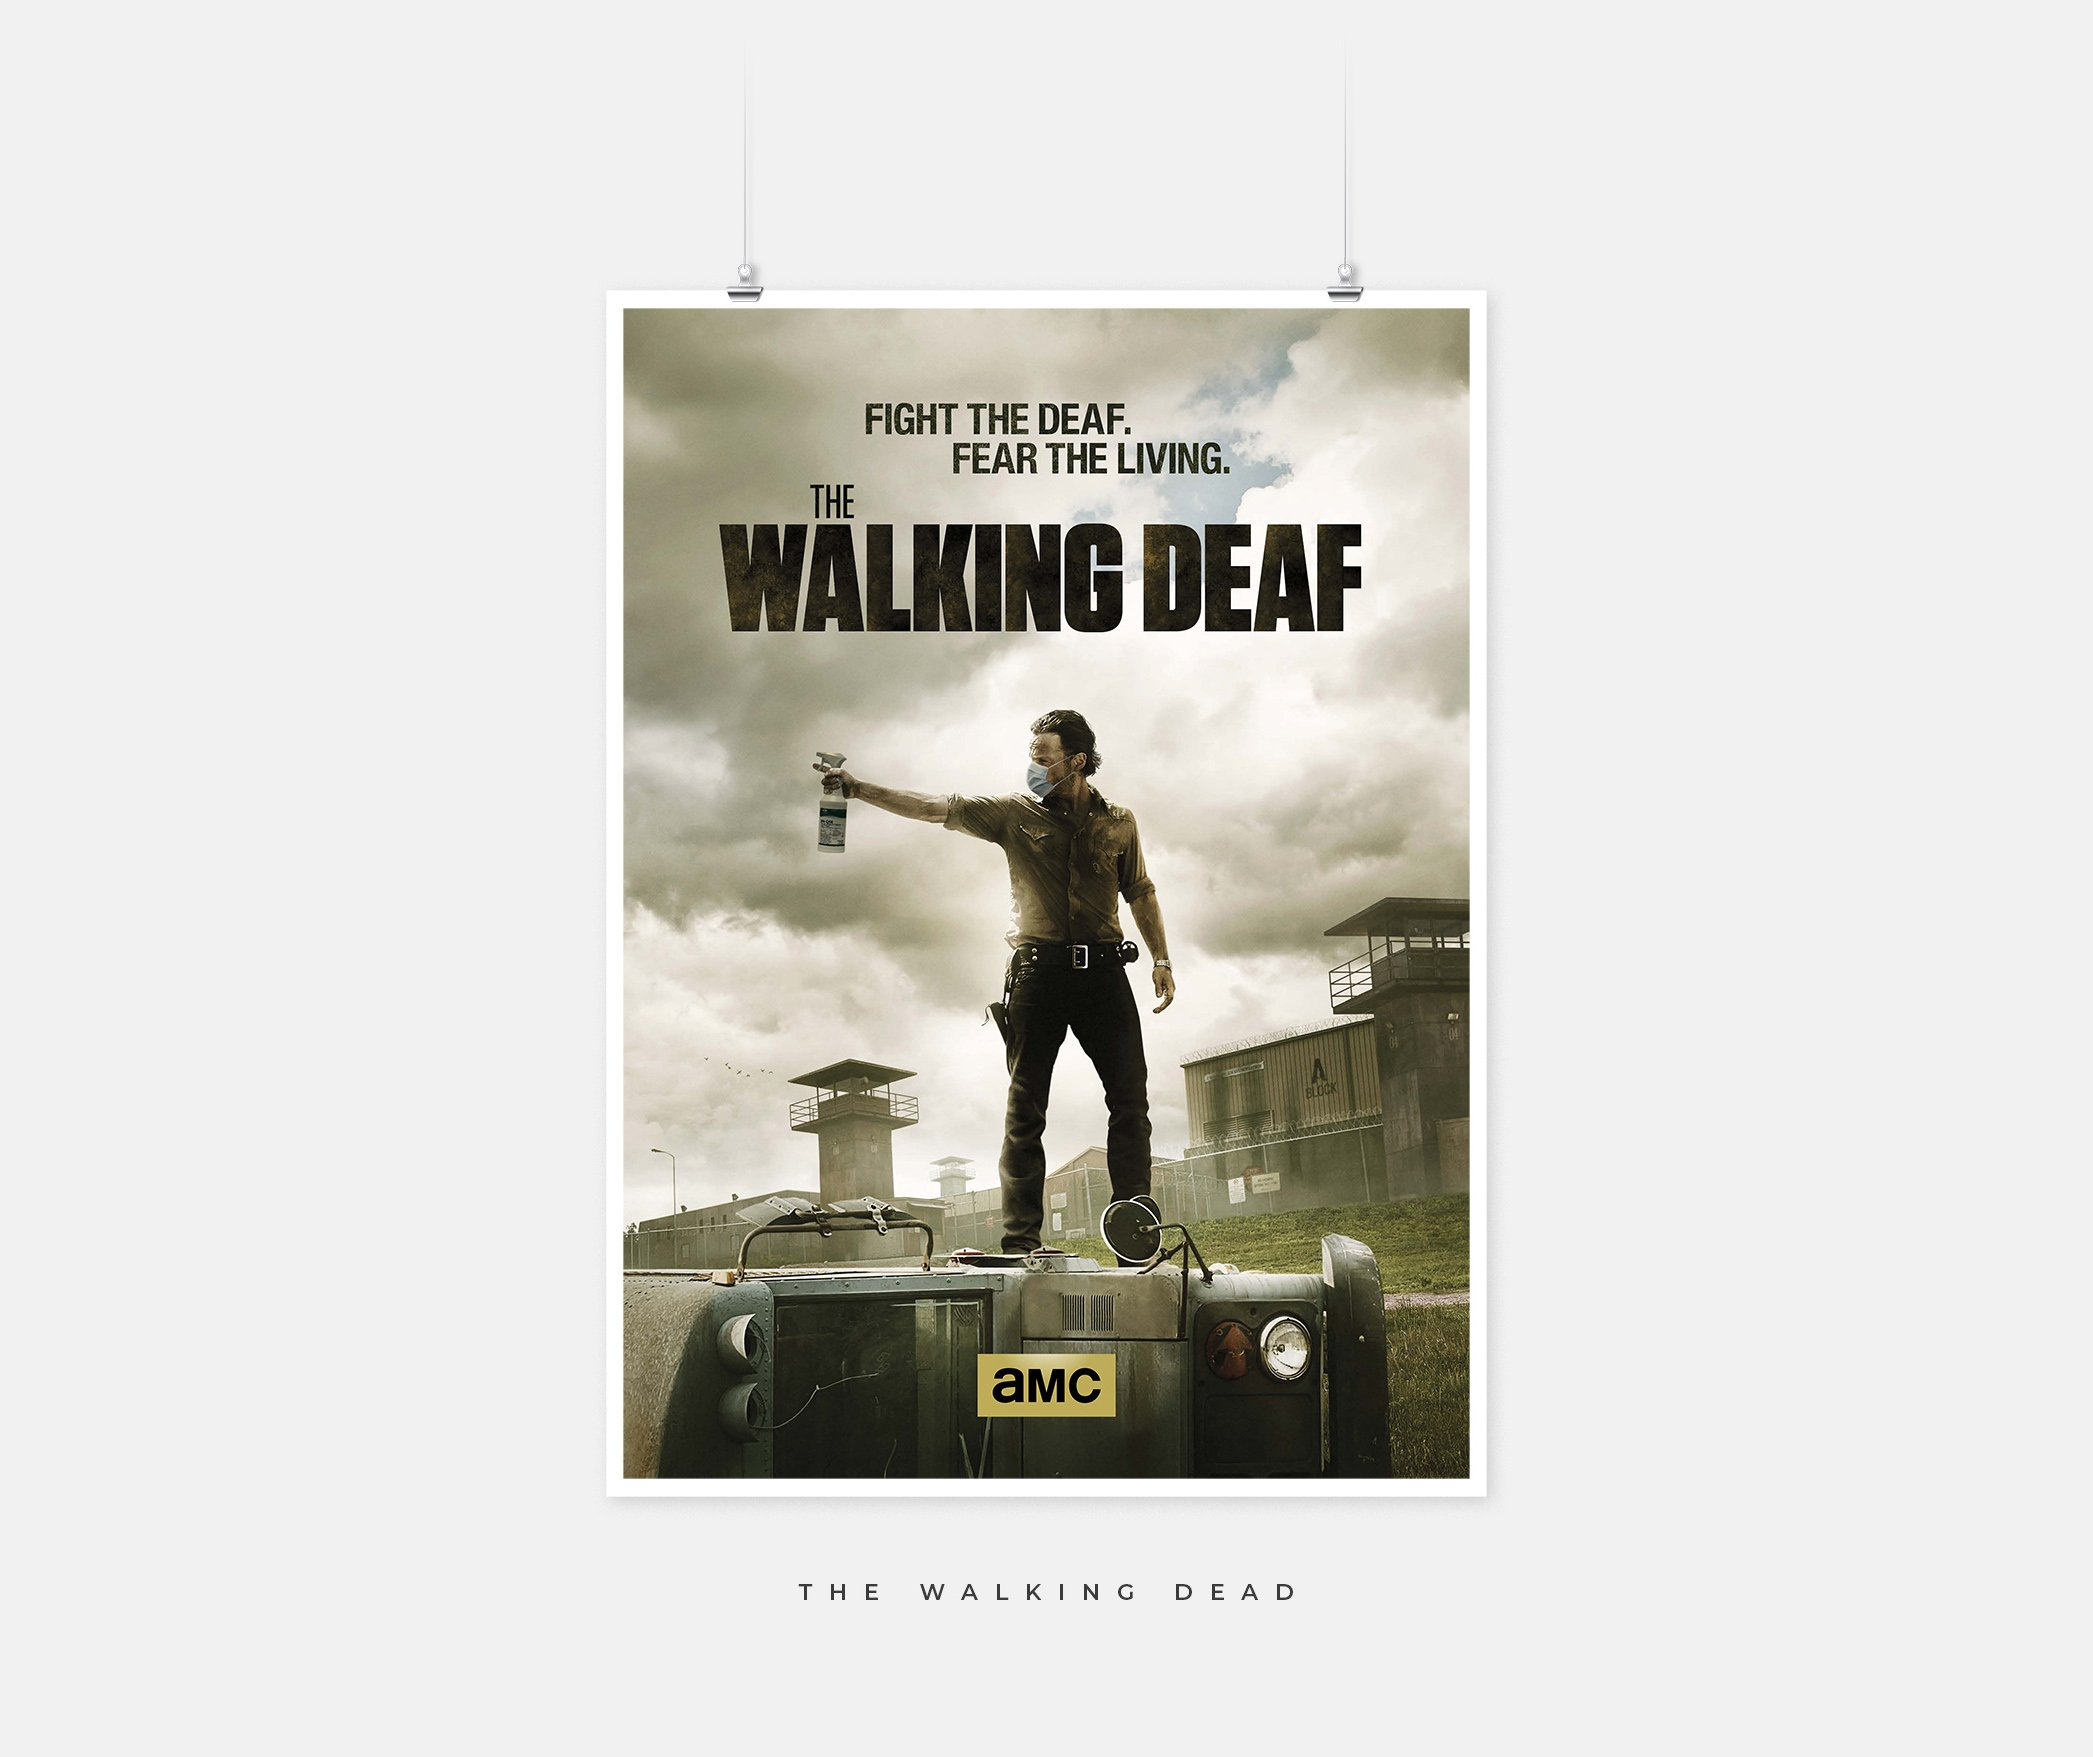 The Walking Dead poster that says The Walking Deaf